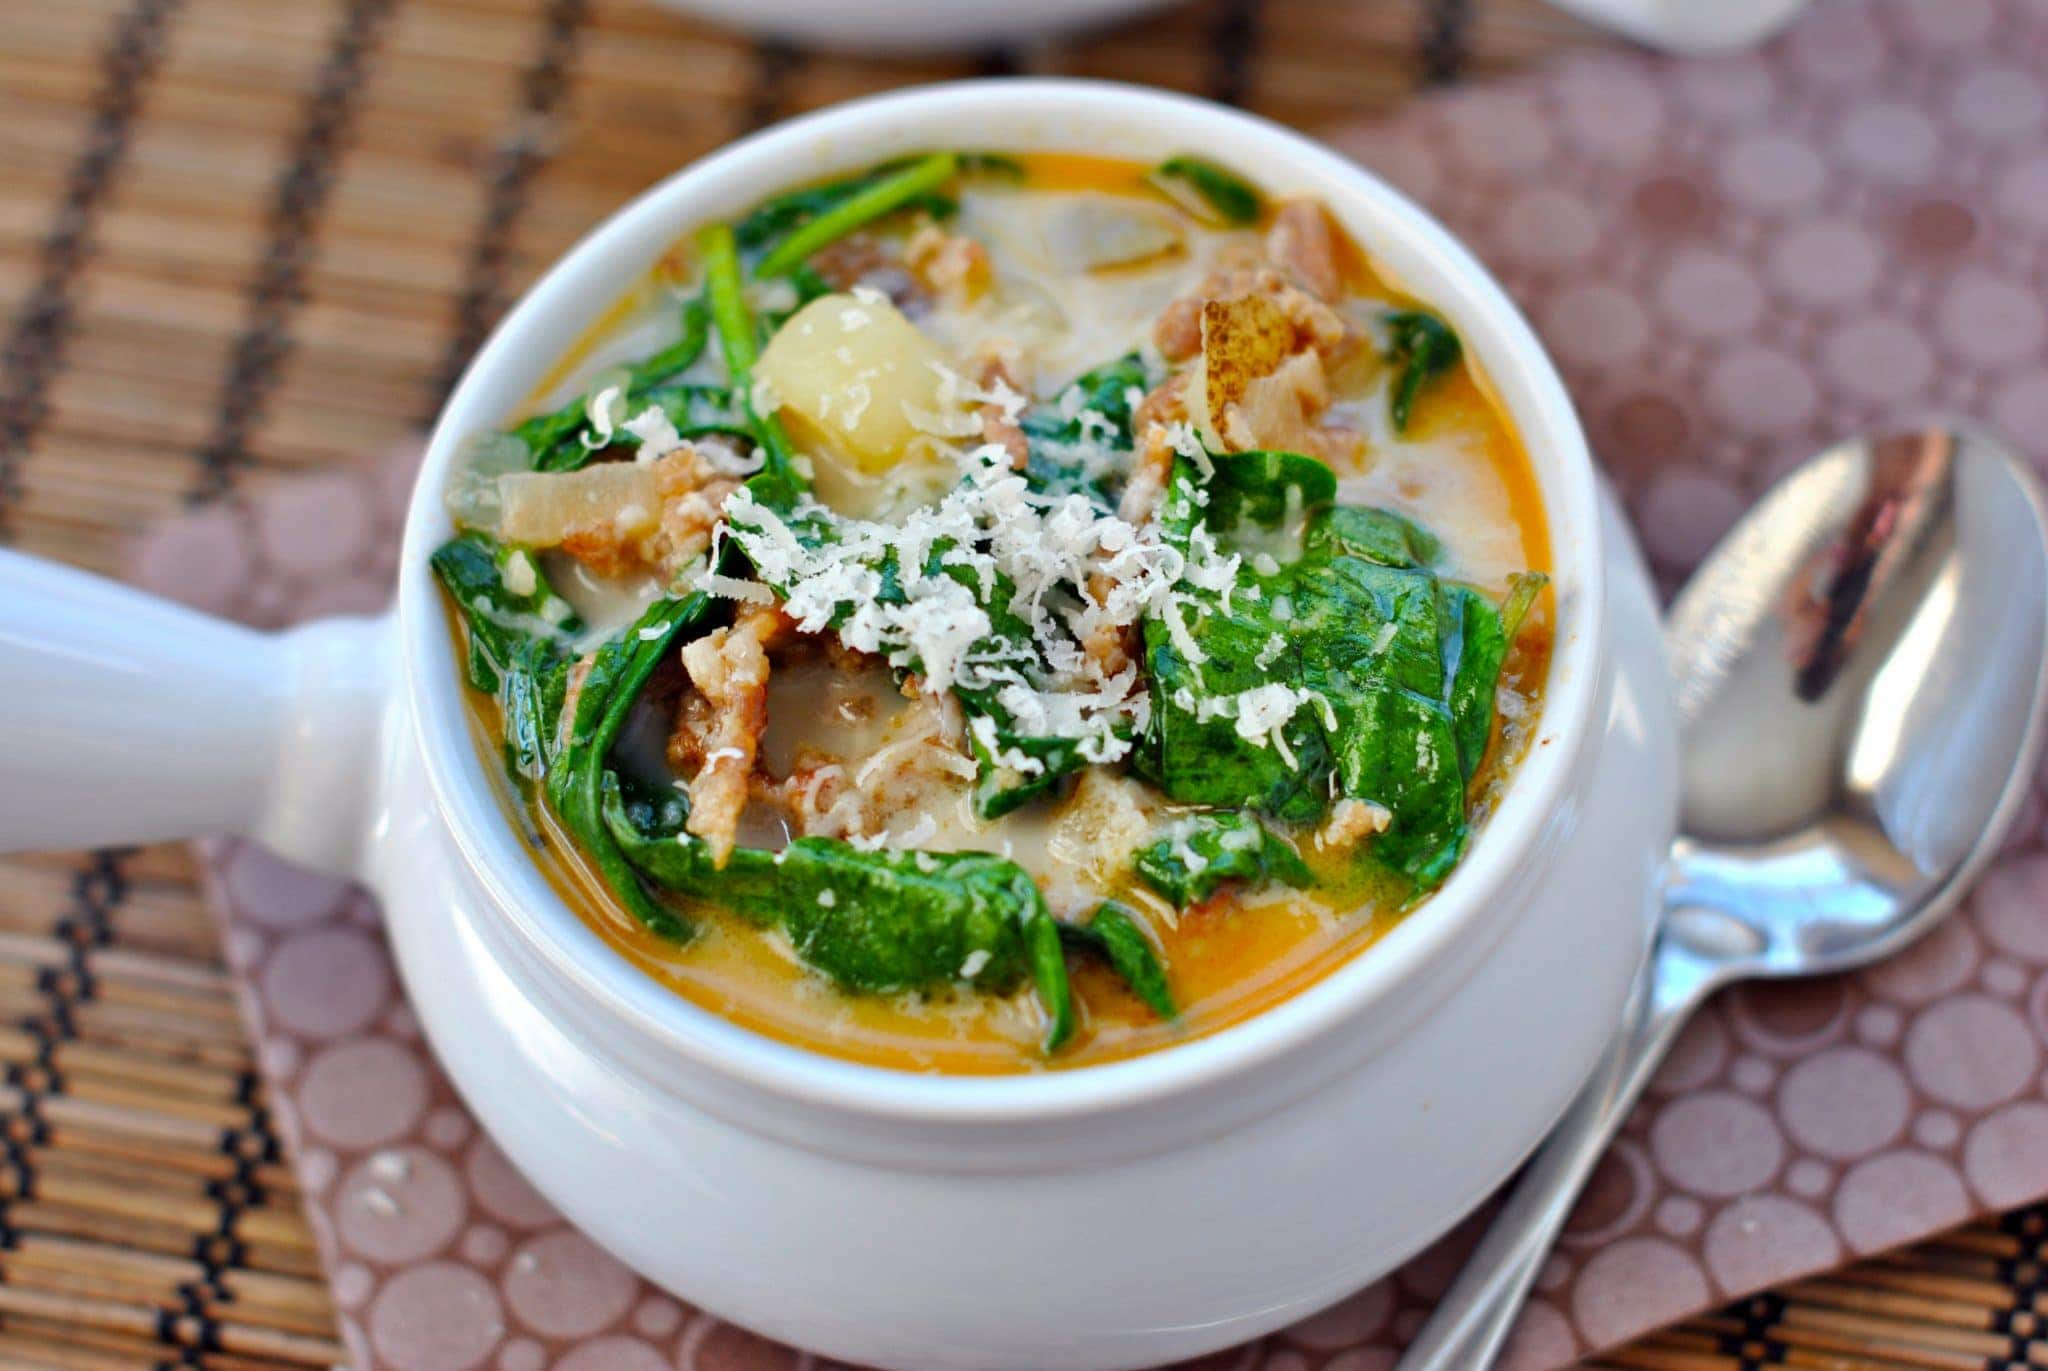 Authentic Italian minestrone soup recipe is the best.